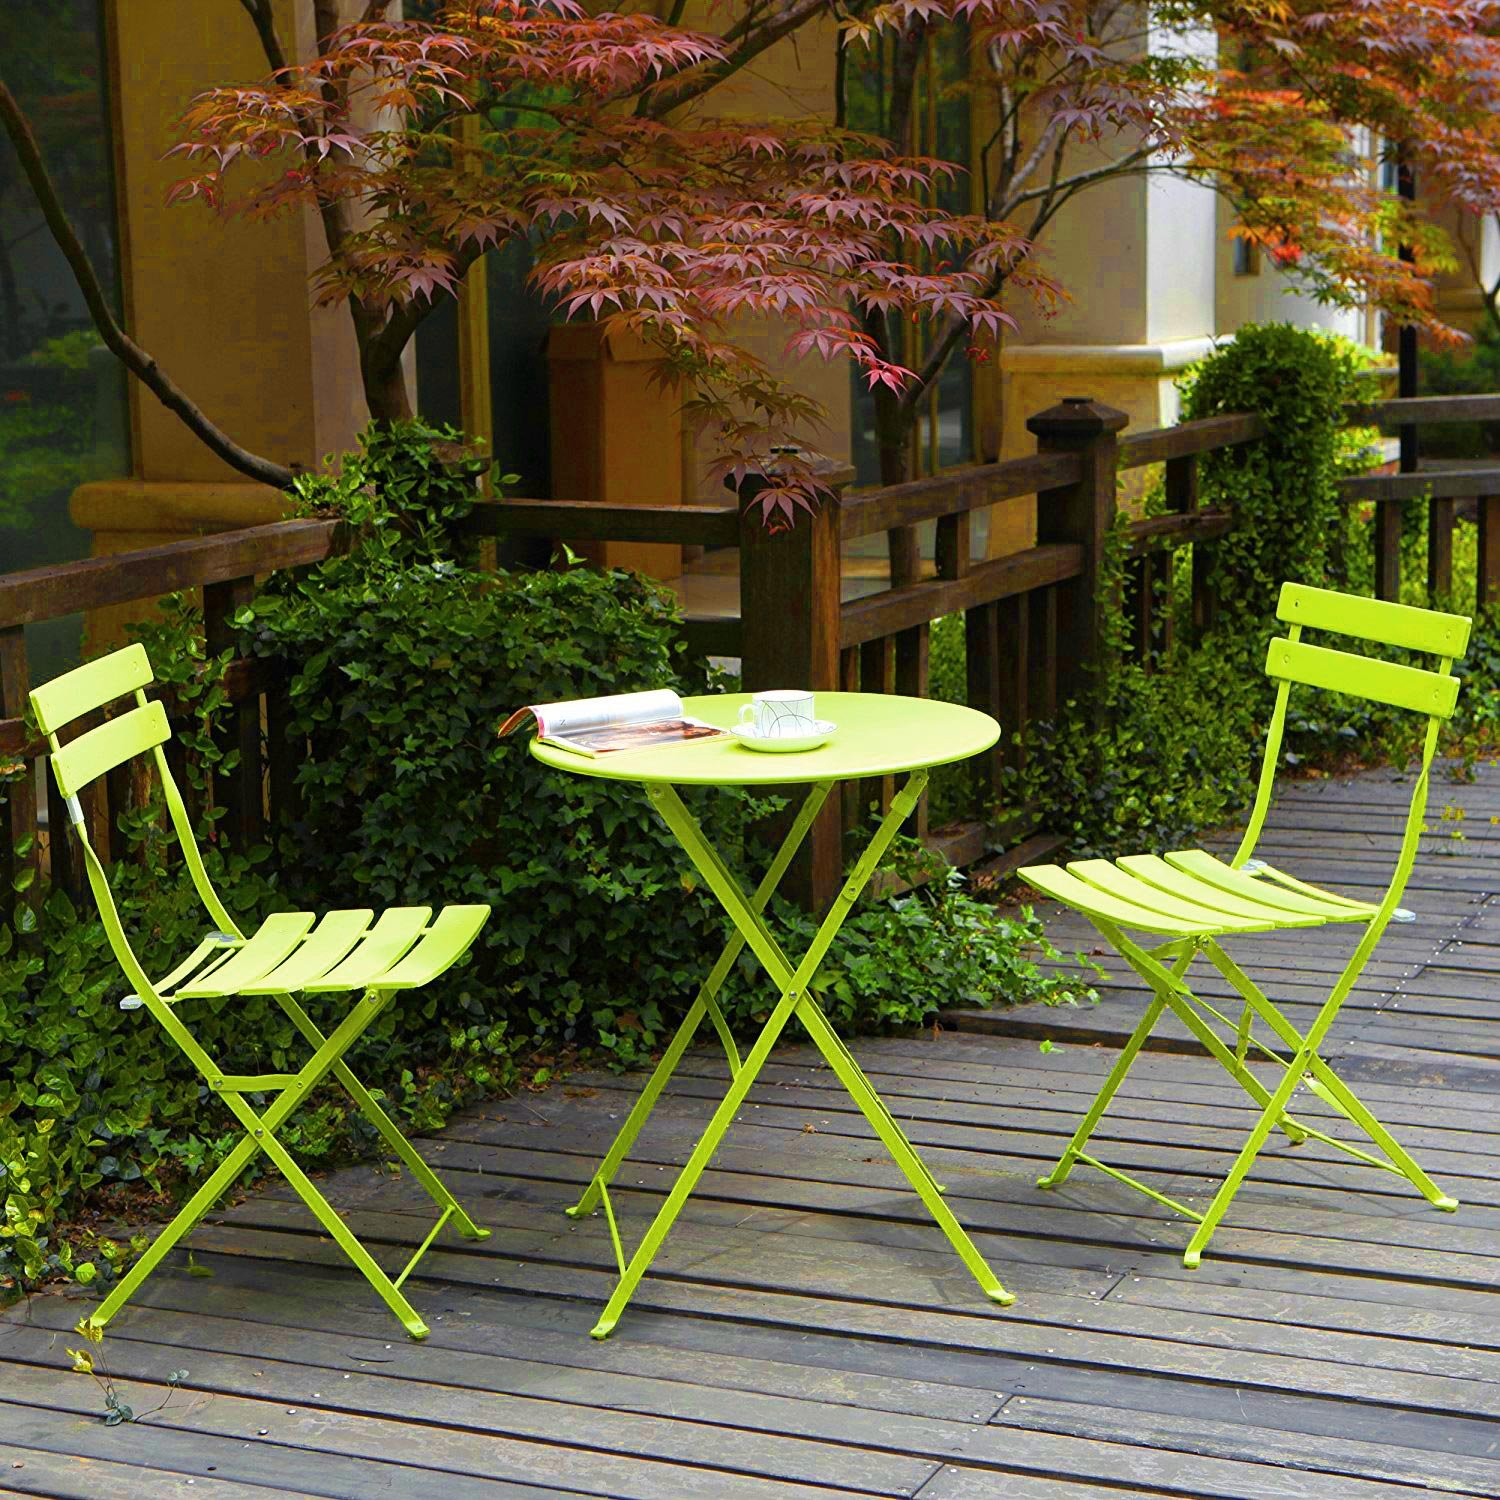 Grand patio 3-Pack Sling Glider Folding Steel 2 Chairs Round Table Indoor Corner Sets,Vivid Green by Grand patio (Image #2)